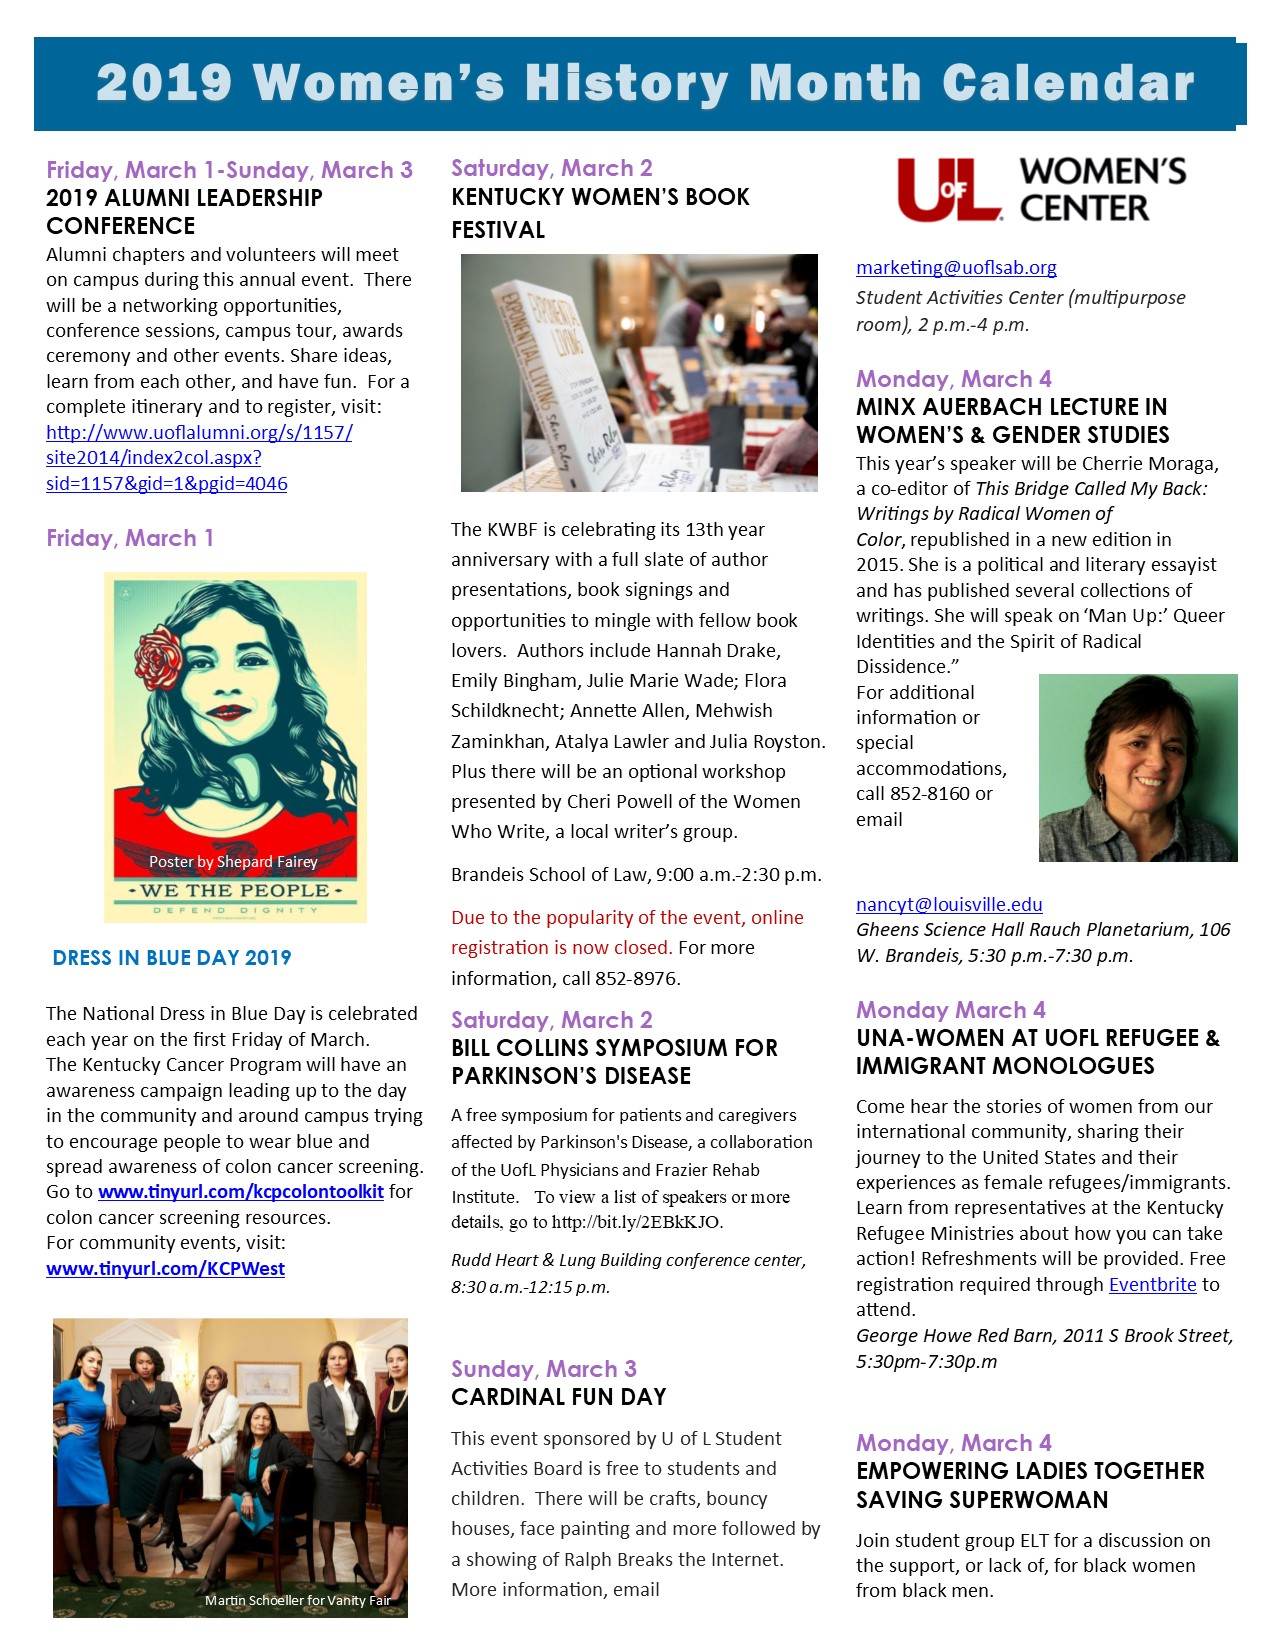 Uofl Calendar 2019 Women's History Month 2019 — Women's Center